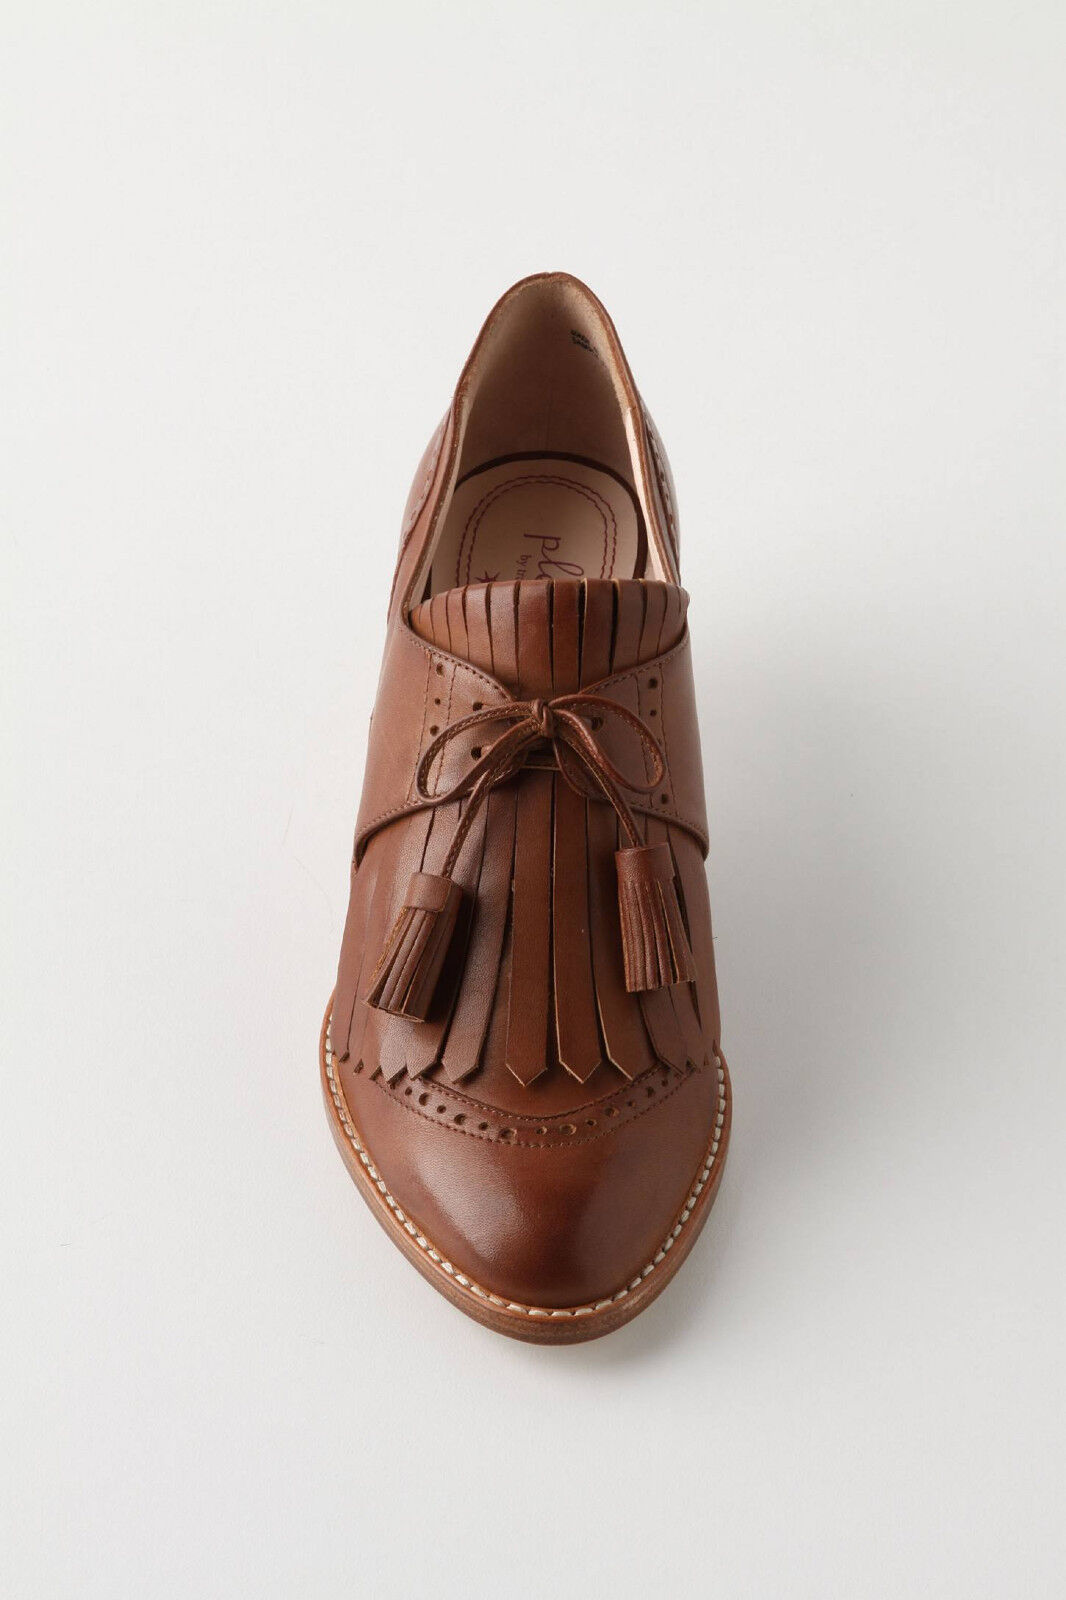 Anthropologie Fortnight Oxfords High Heels Pumps Leder Schuhes By By By Tracy Reese 36 d90376